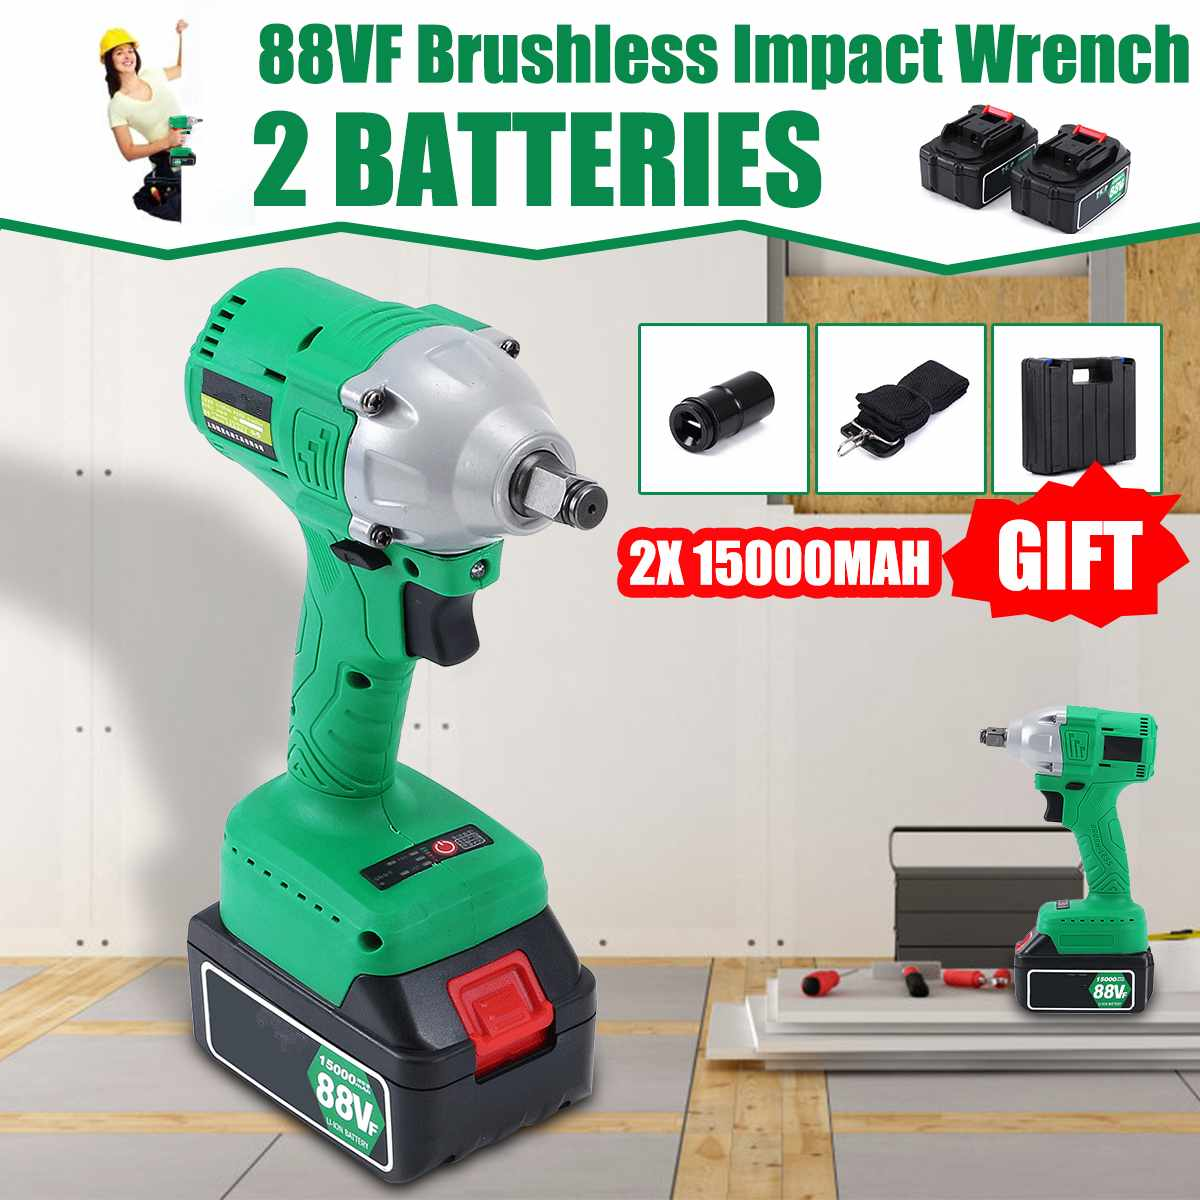 88VF Brushless Electric Impact Wrench High Torque Rechargable 15000mAh Li ion 2 Batteries Cordless Impact Wrench with LED lights|Electric Wrenches| |  - title=